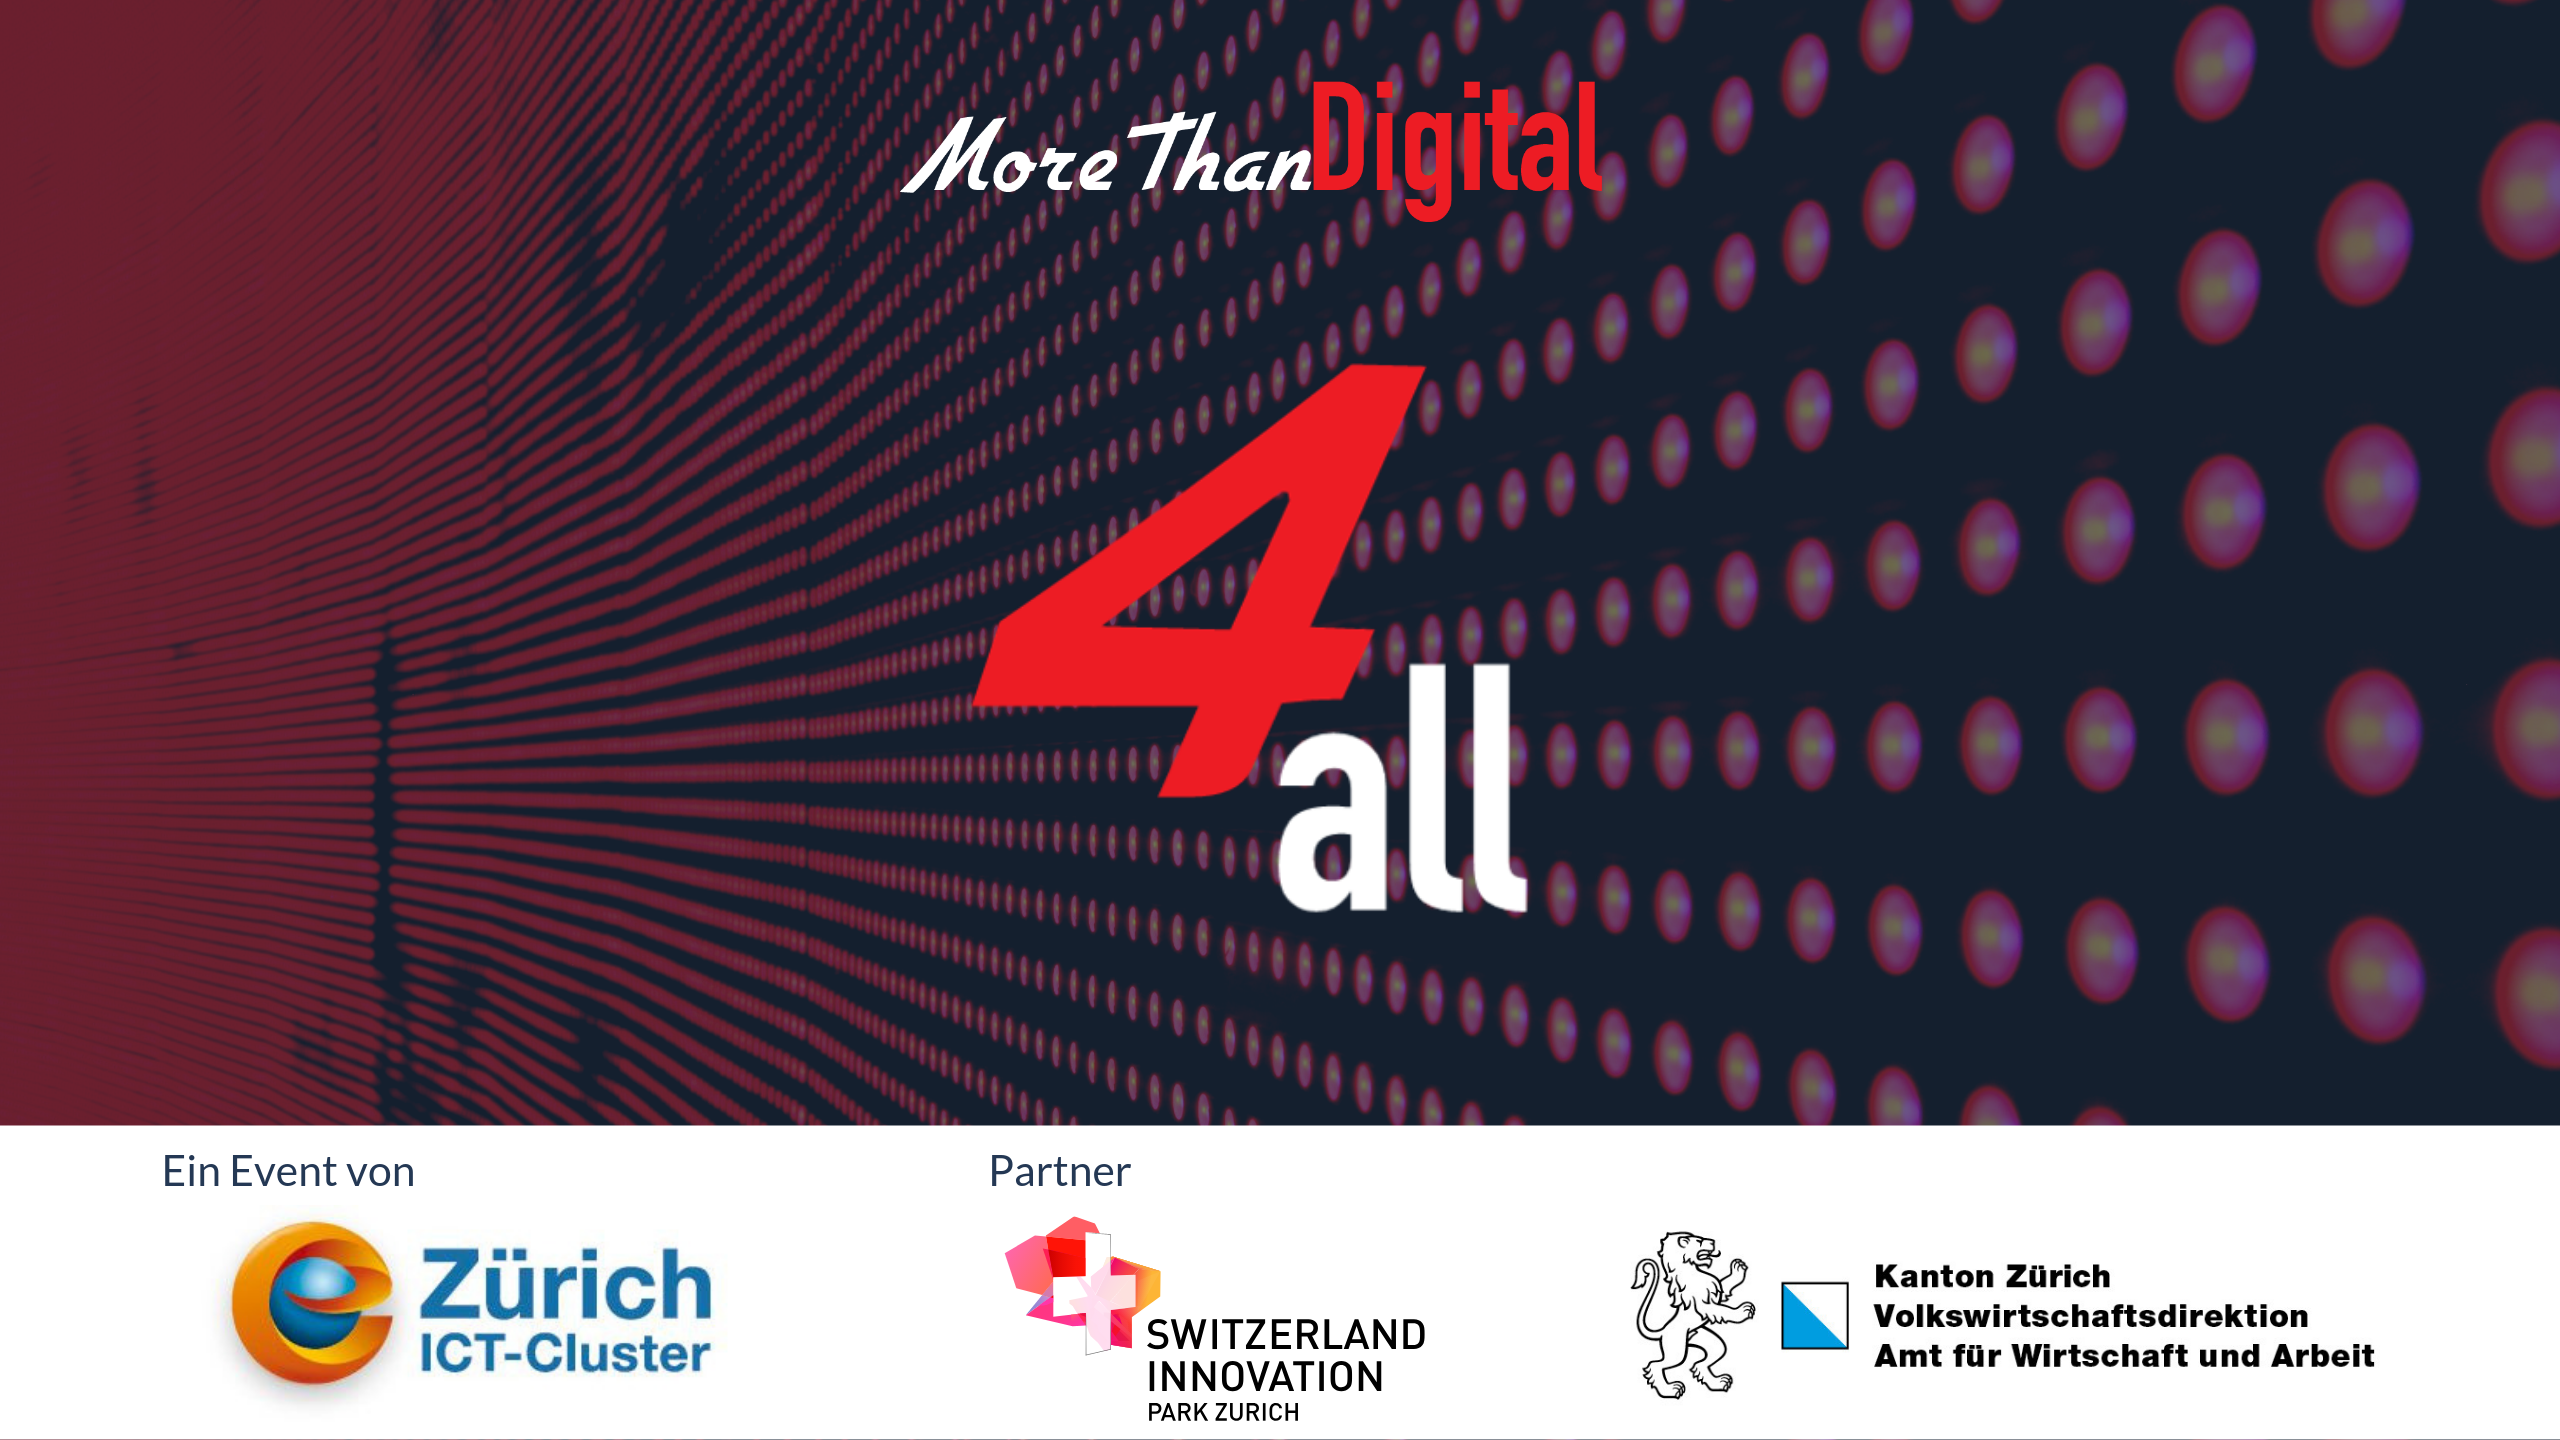 eZürich und MoreThanDigital 4all Pilotevent 6